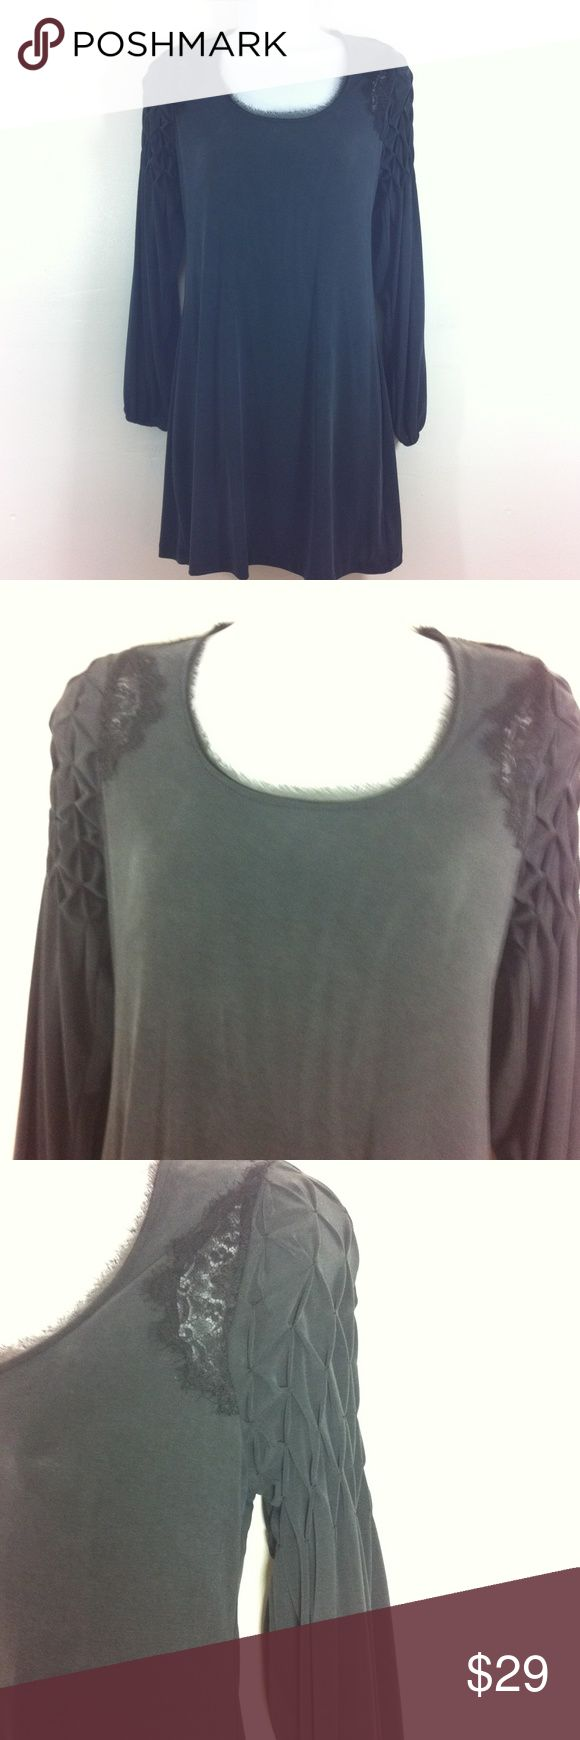 Stunning charcoal grey dress by Free People Charcoal grey mini dress. It has old world charm in the sleeves and lace insets by sleeves in from and back. Slightly sheer fabric. Gently worn and no flaws Free People Dresses